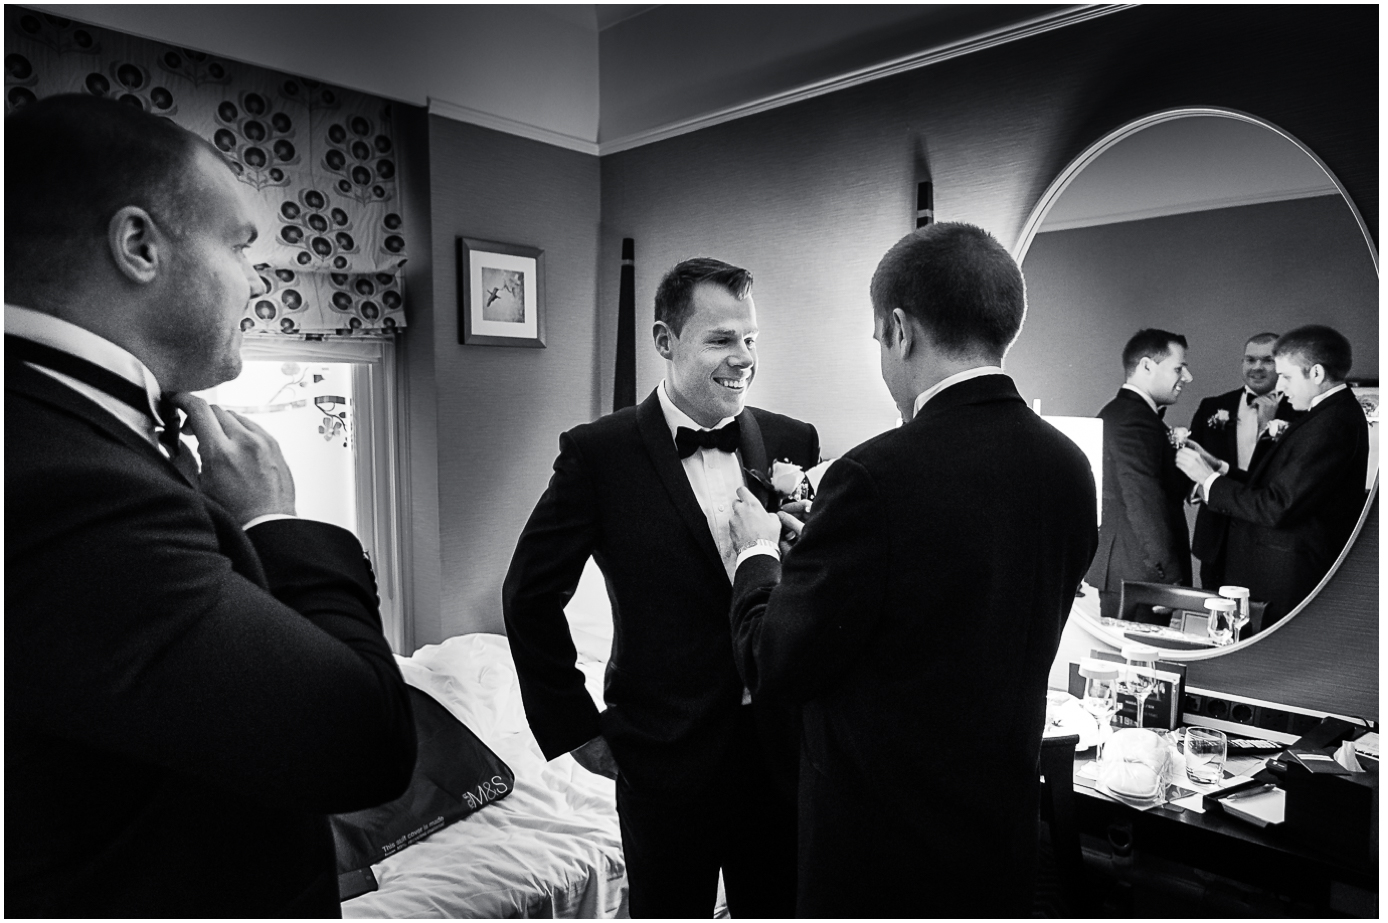 12 - Esmat and Angus - St. Ermin's Hotel London wedding photographer